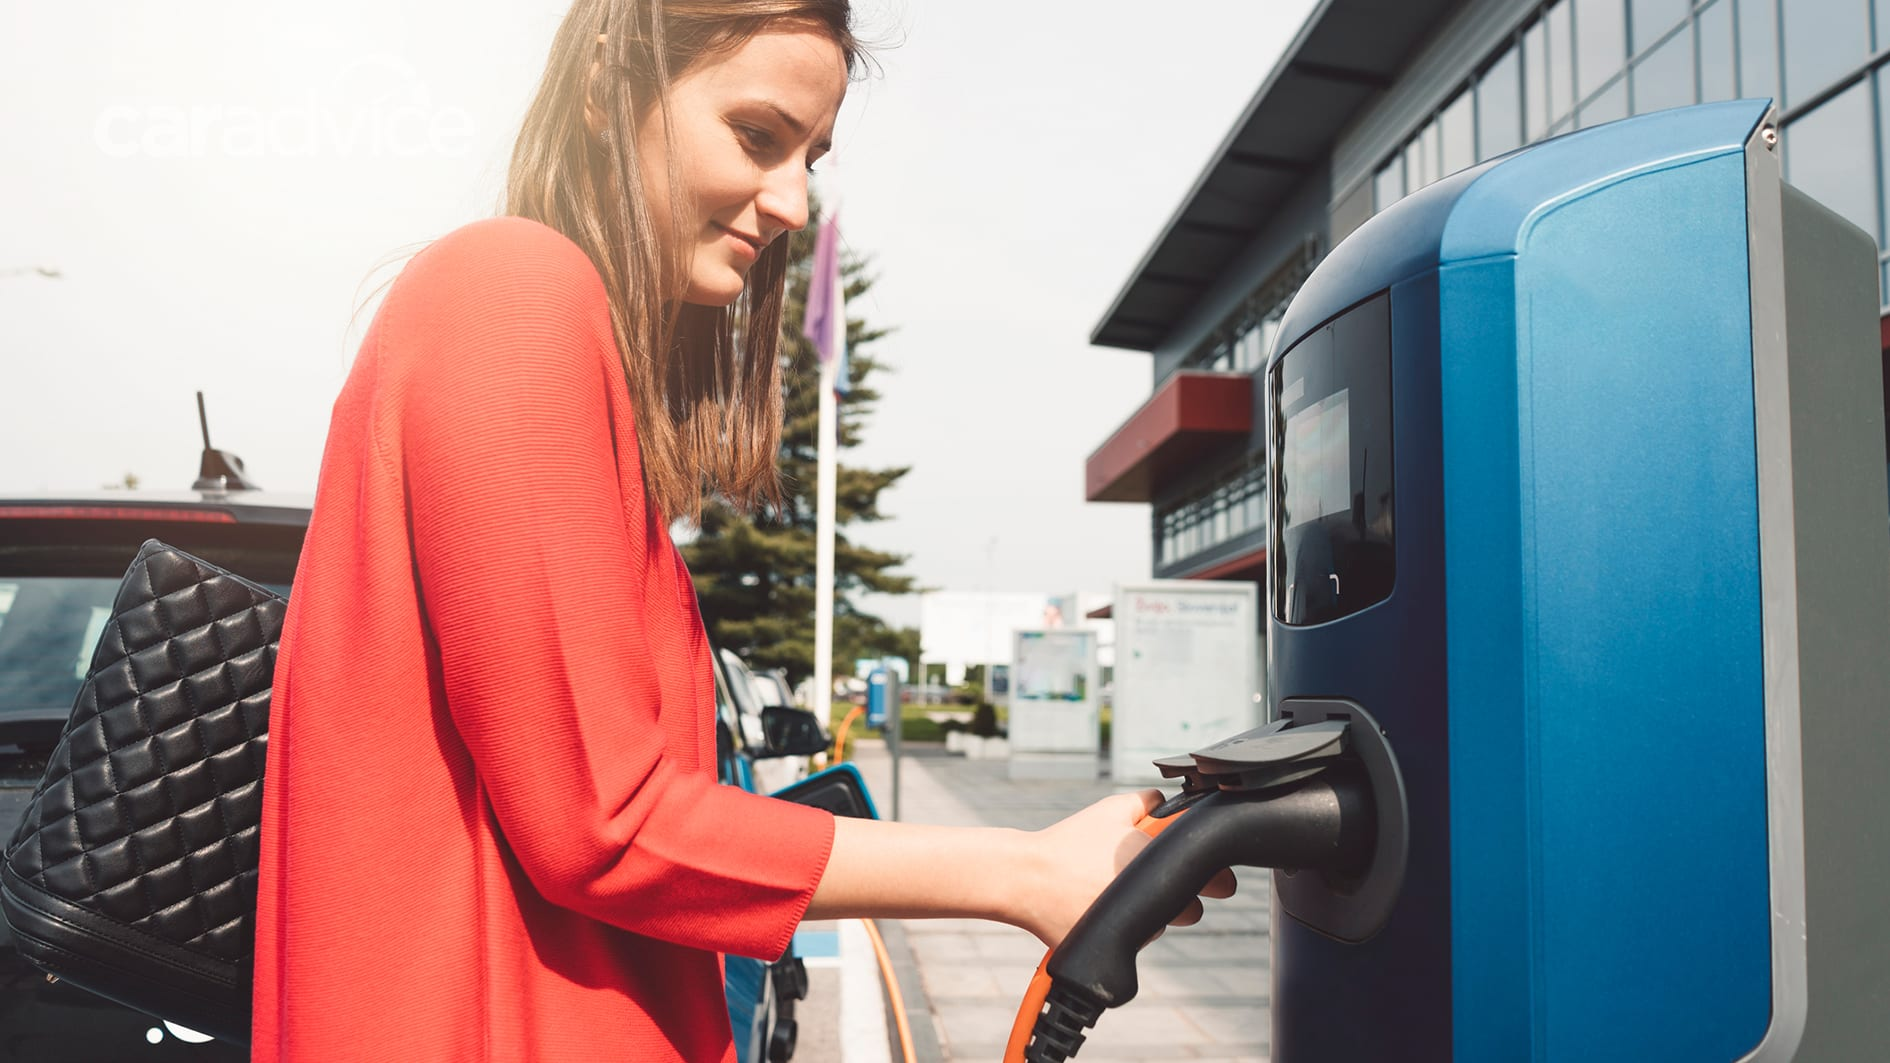 More Australian buyers keen on electric cars, but doubts remain - survey - 1 of 1